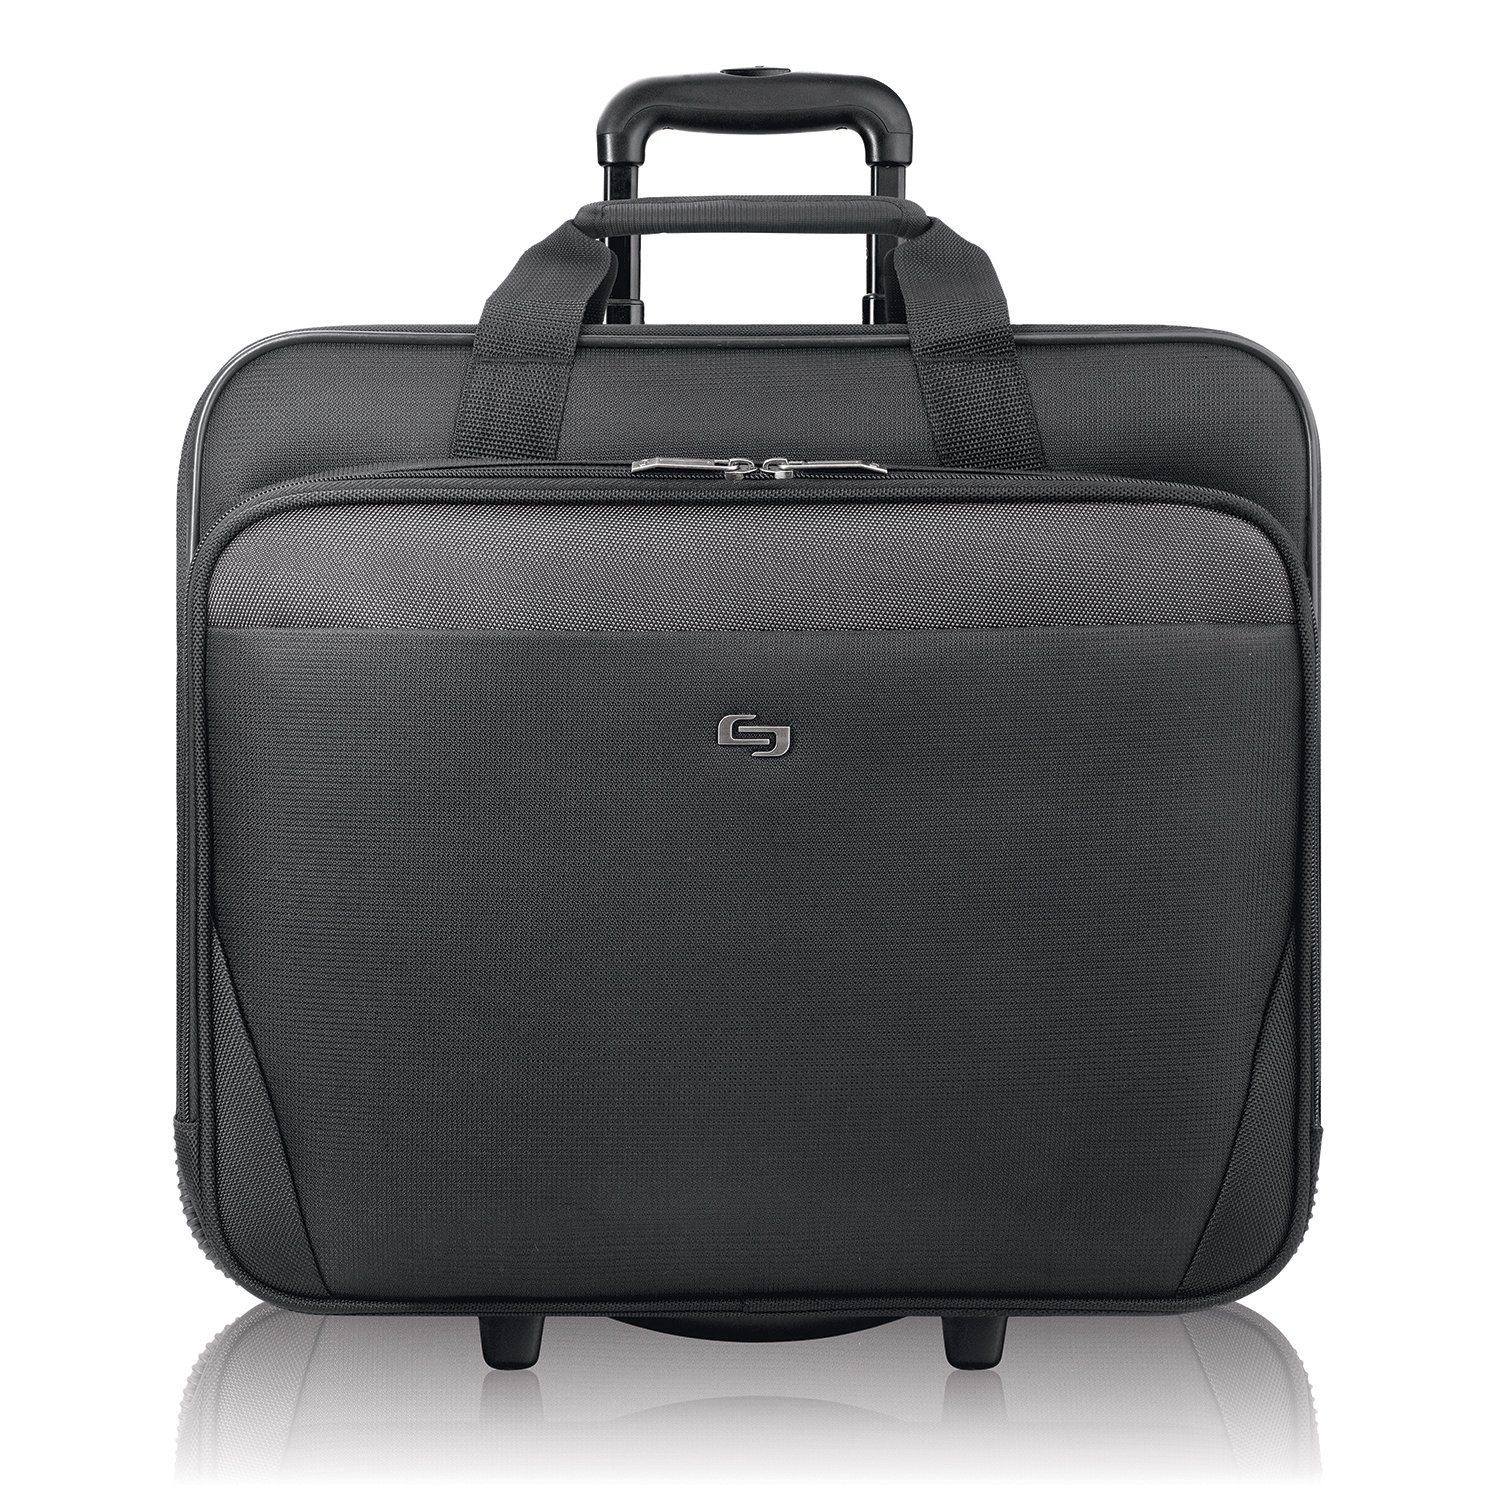 Solo New York Empire Rolling Laptop Bag.  Rolling Briefcase for Women and Men. Fits up to 17.3 inch laptop - Black by SOLO